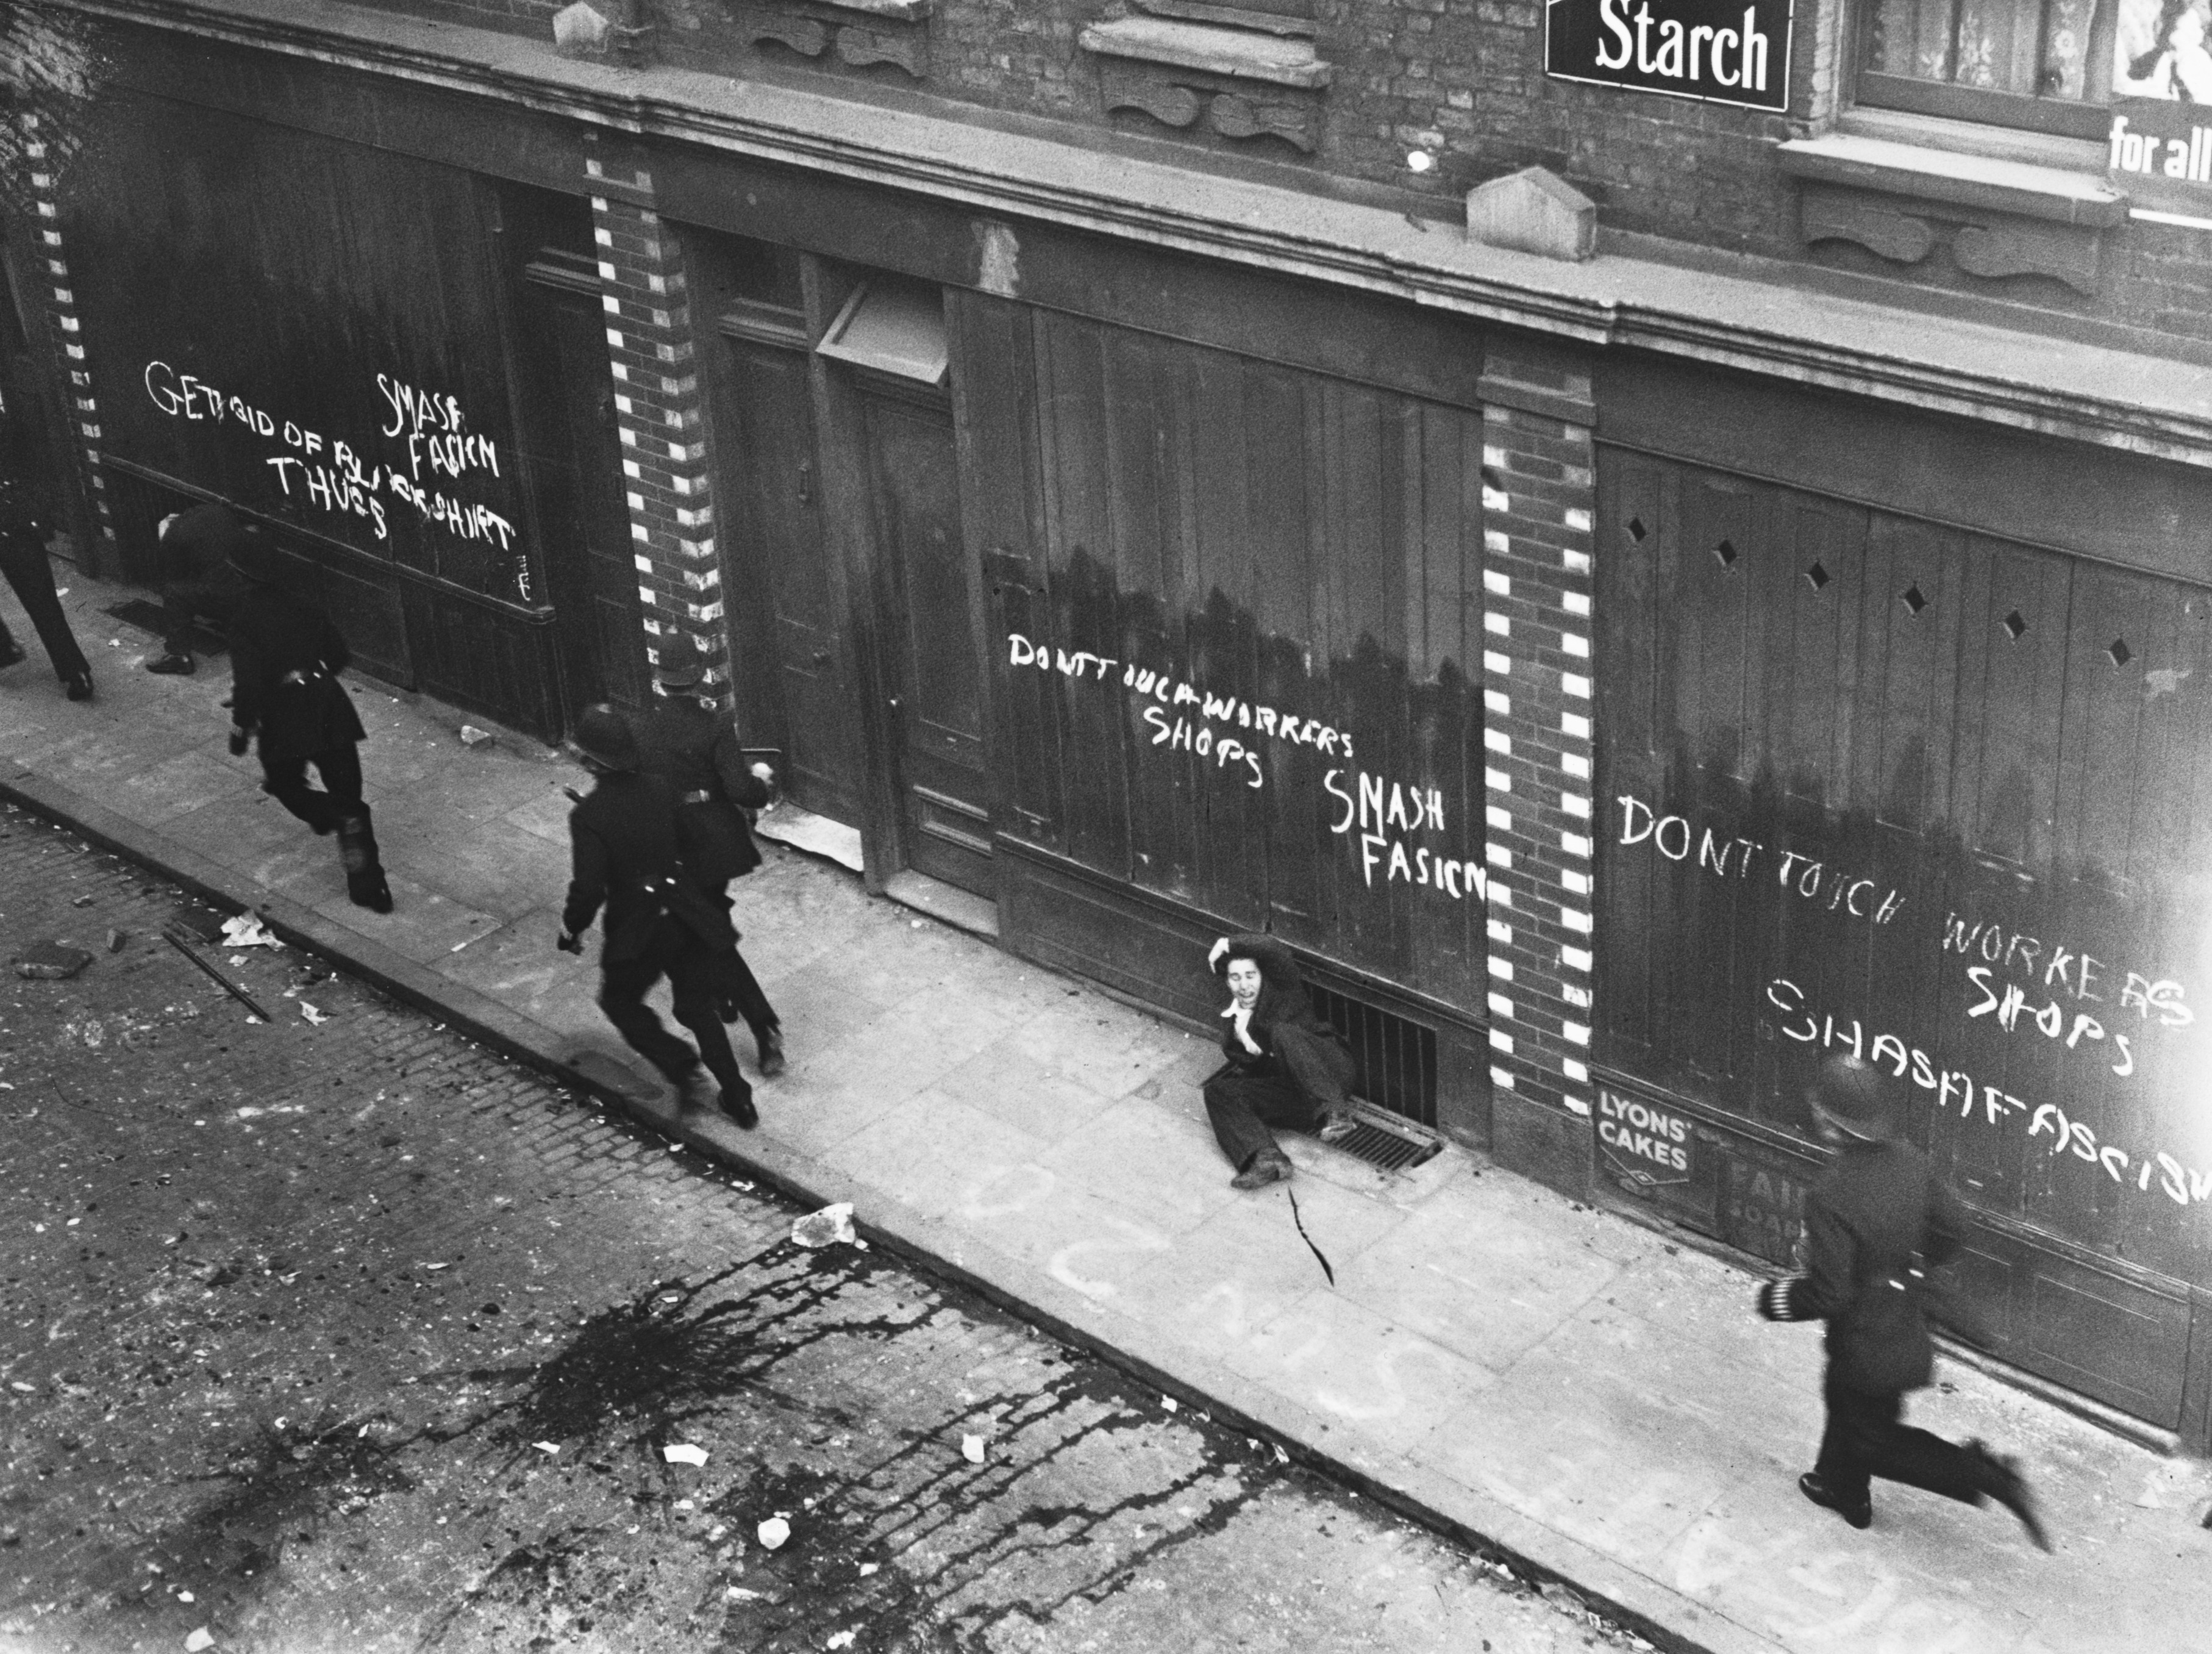 1936. Oswald Mosley's British Union of Fascists planned to march through the largely Jewish East End on Oct. 4, 1936. The government refused to stop the march, so 300,000 anti-fascist demonstrators stopped it for them in the face of 10,000 police.